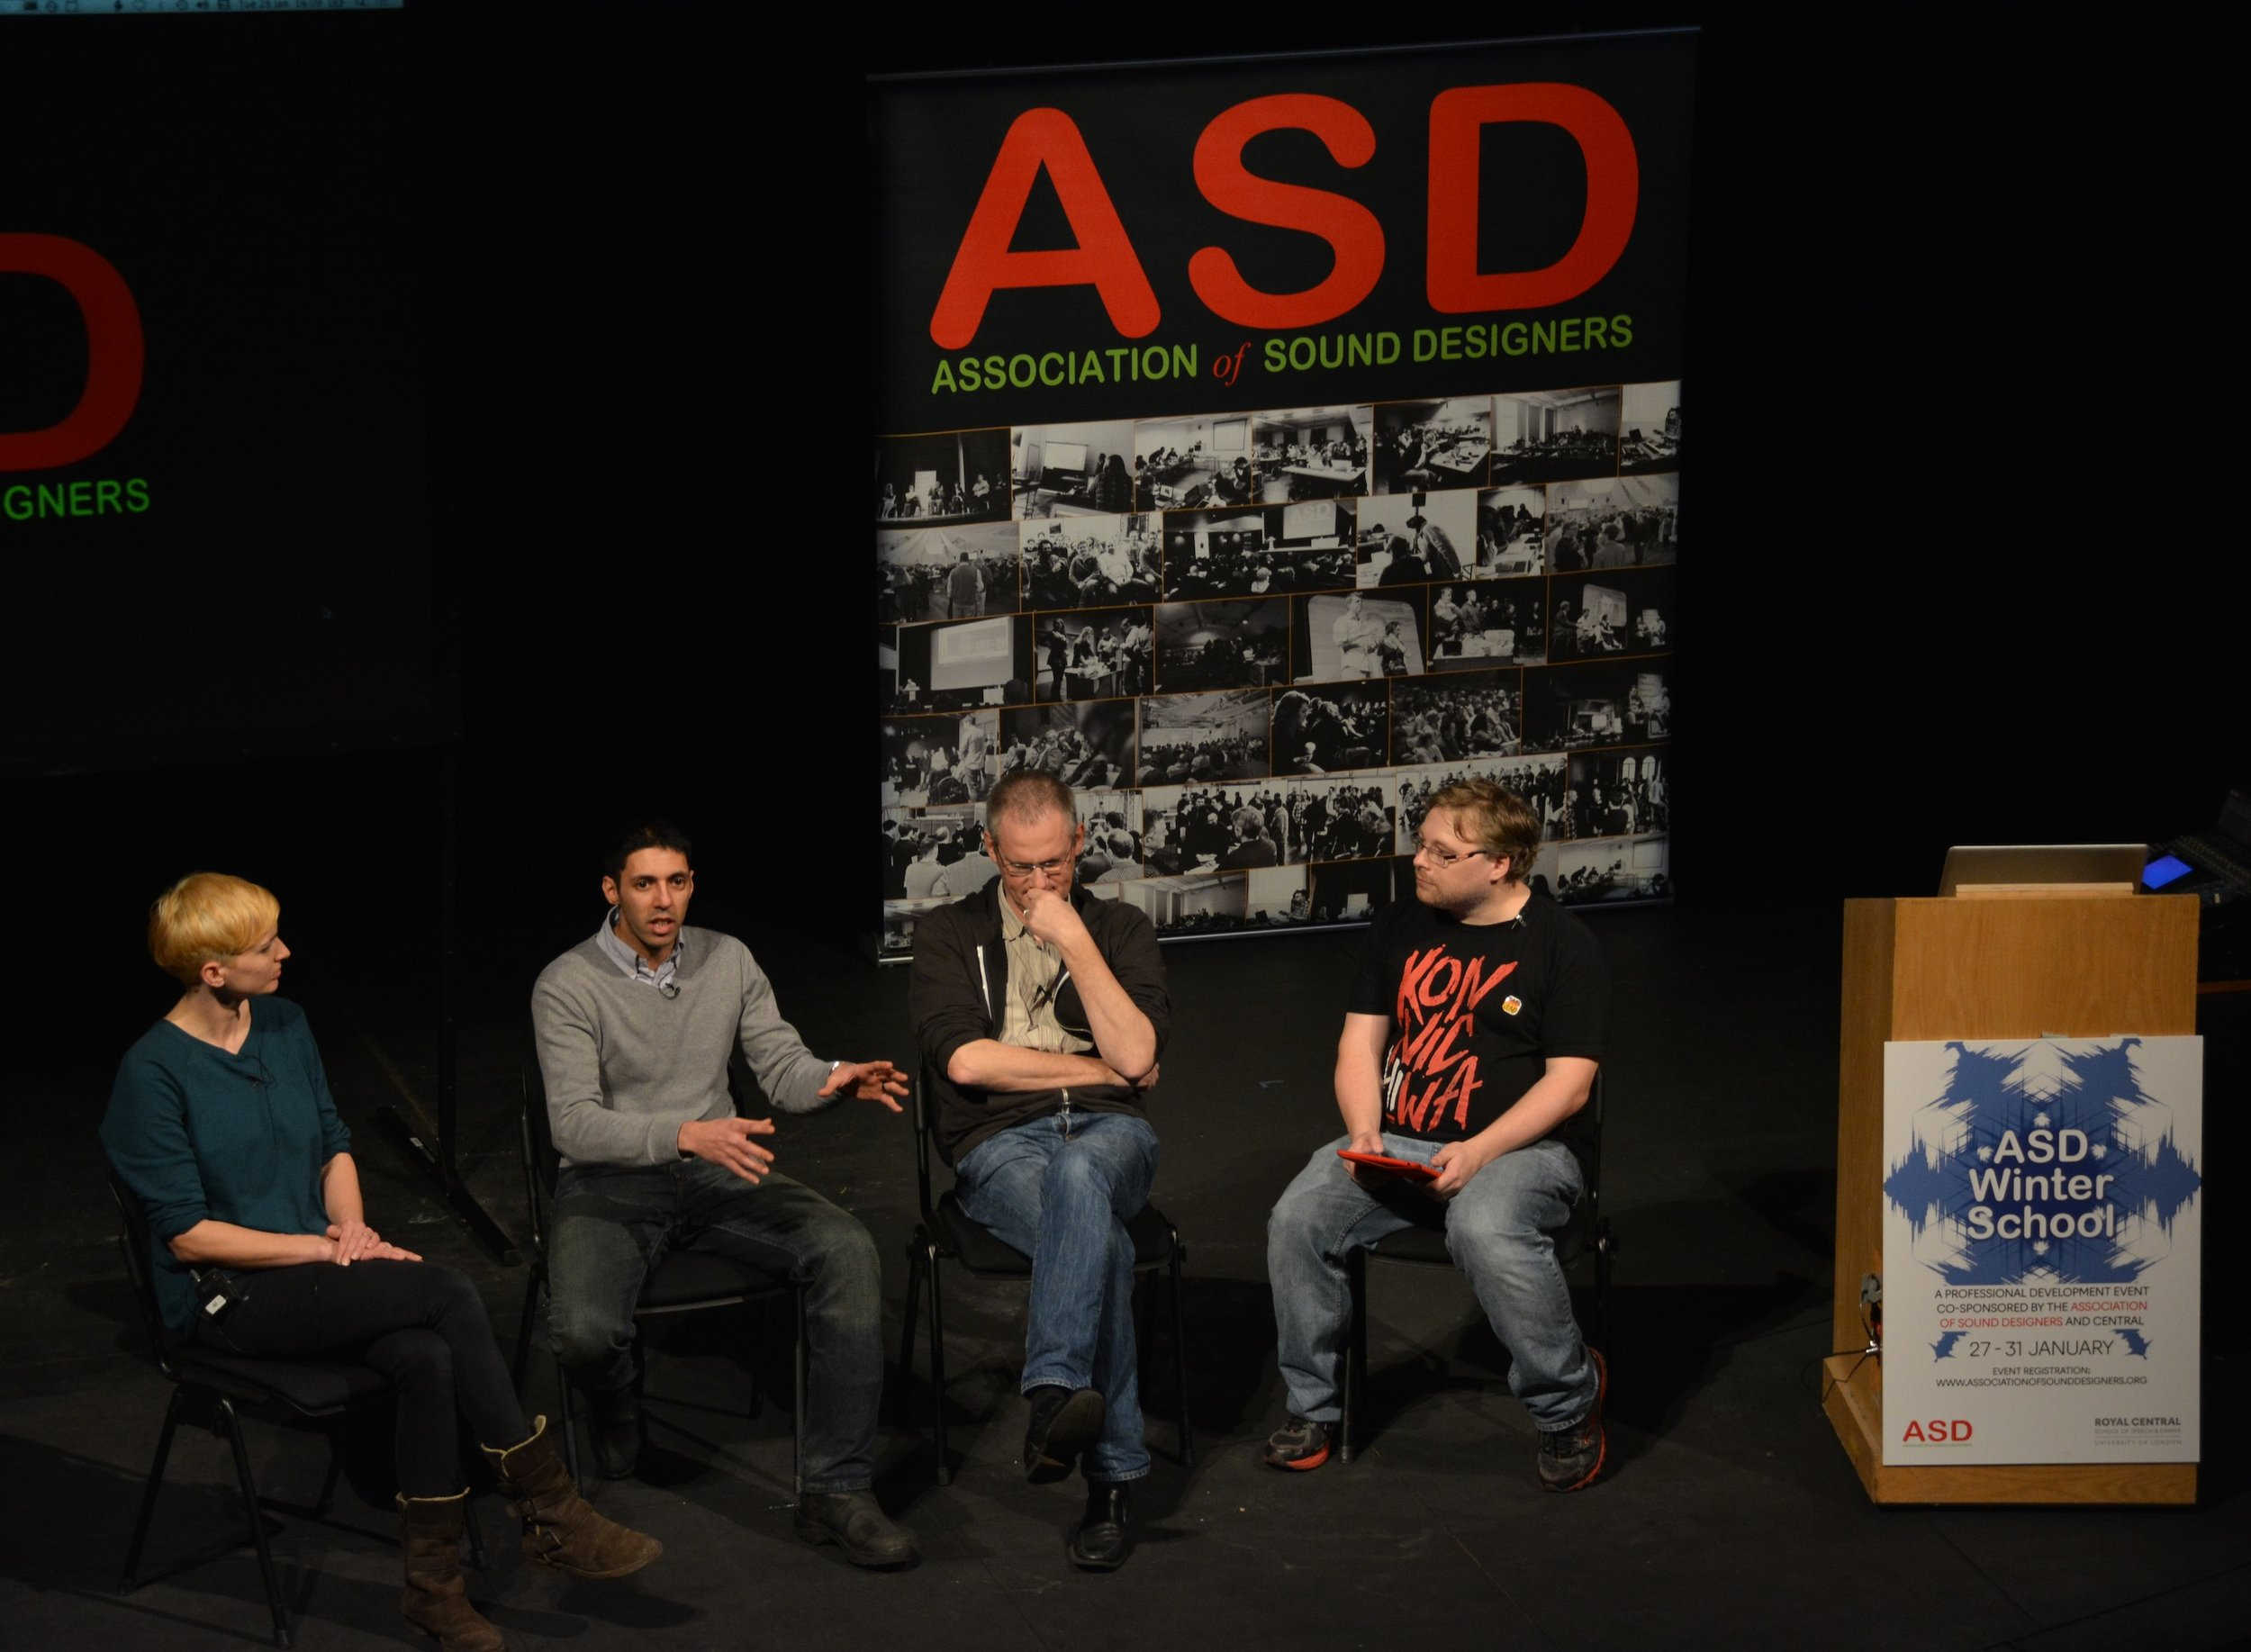 Panel discussion - keeping the performers onside